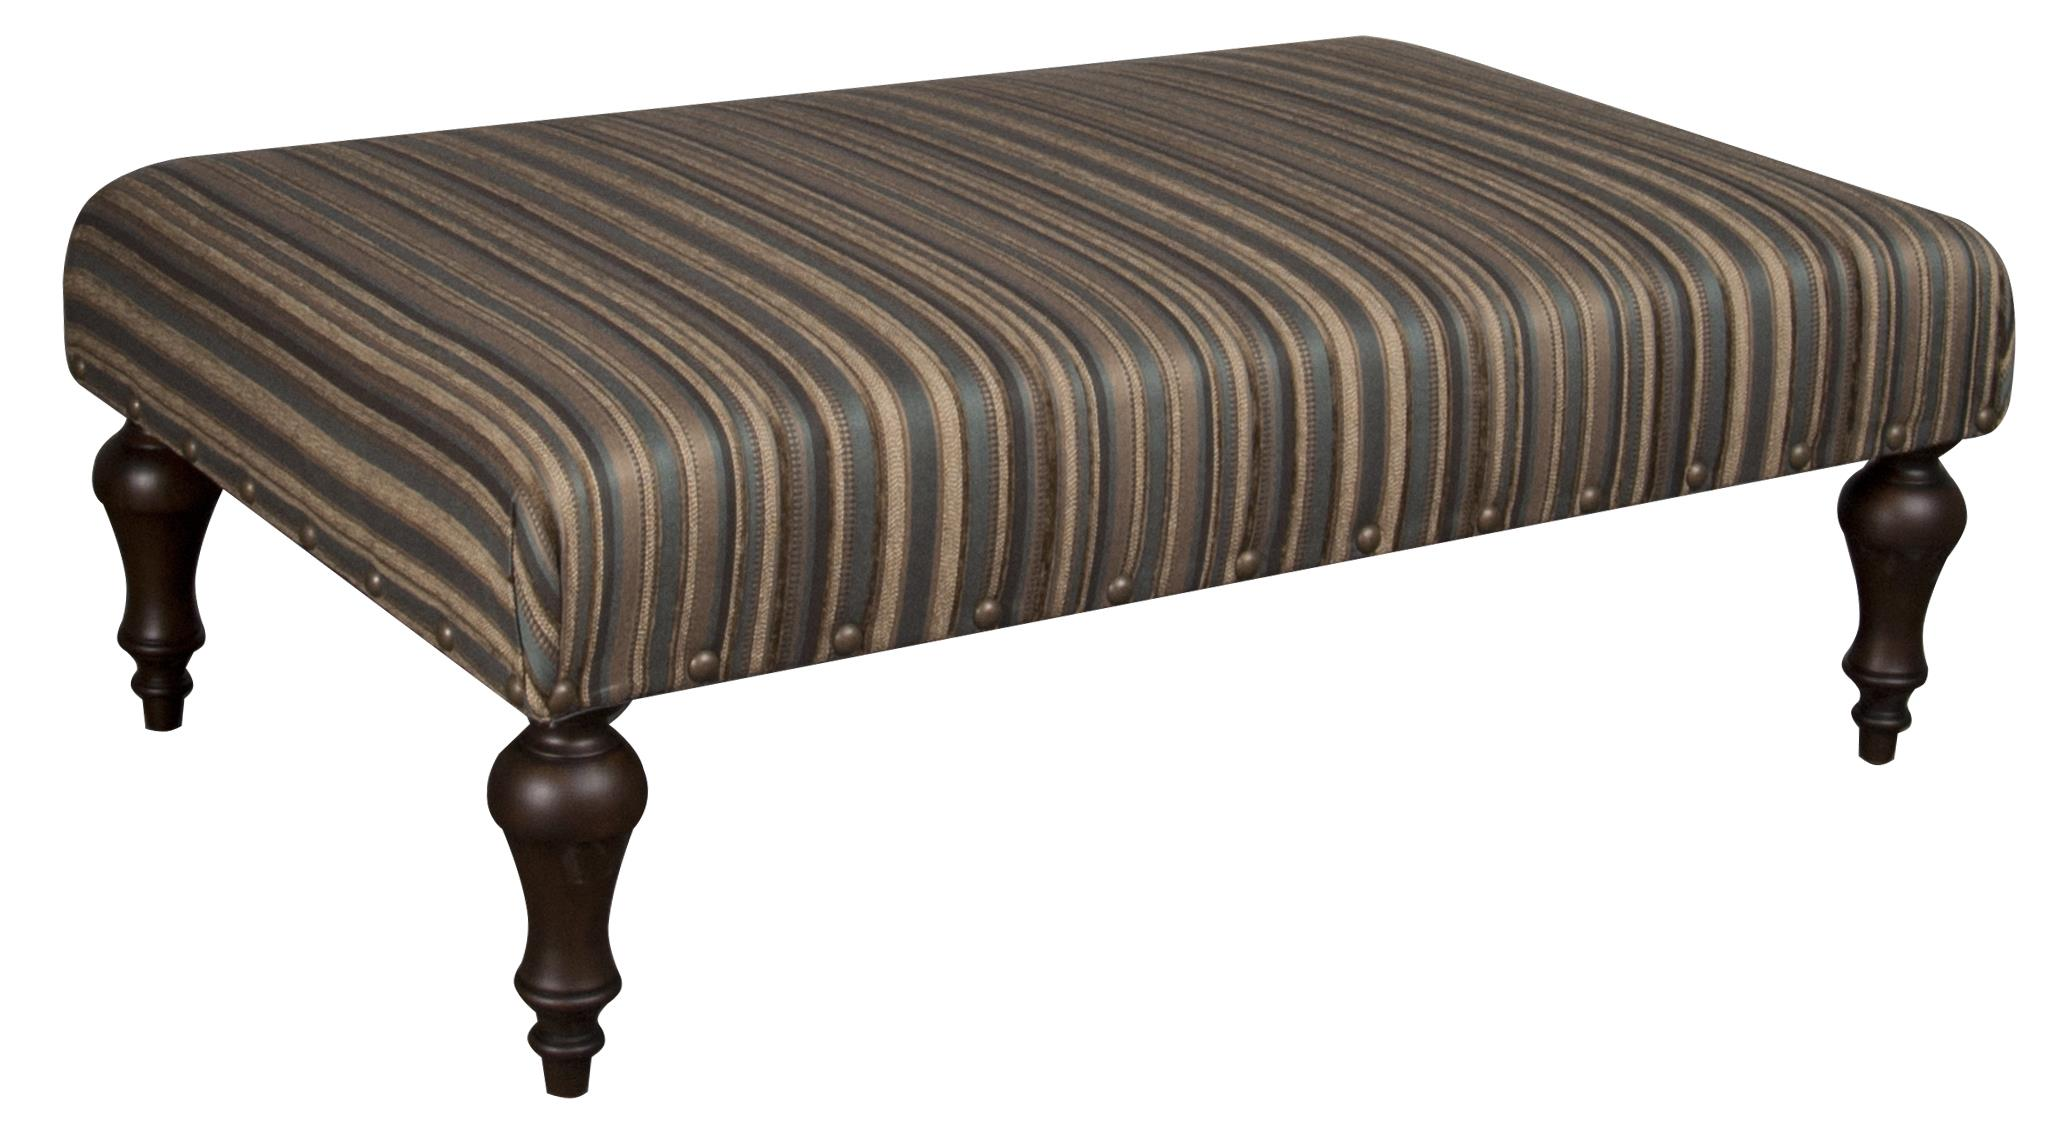 Morris Home Furnishings Bexley Bexley Ottoman - Item Number: 350412791